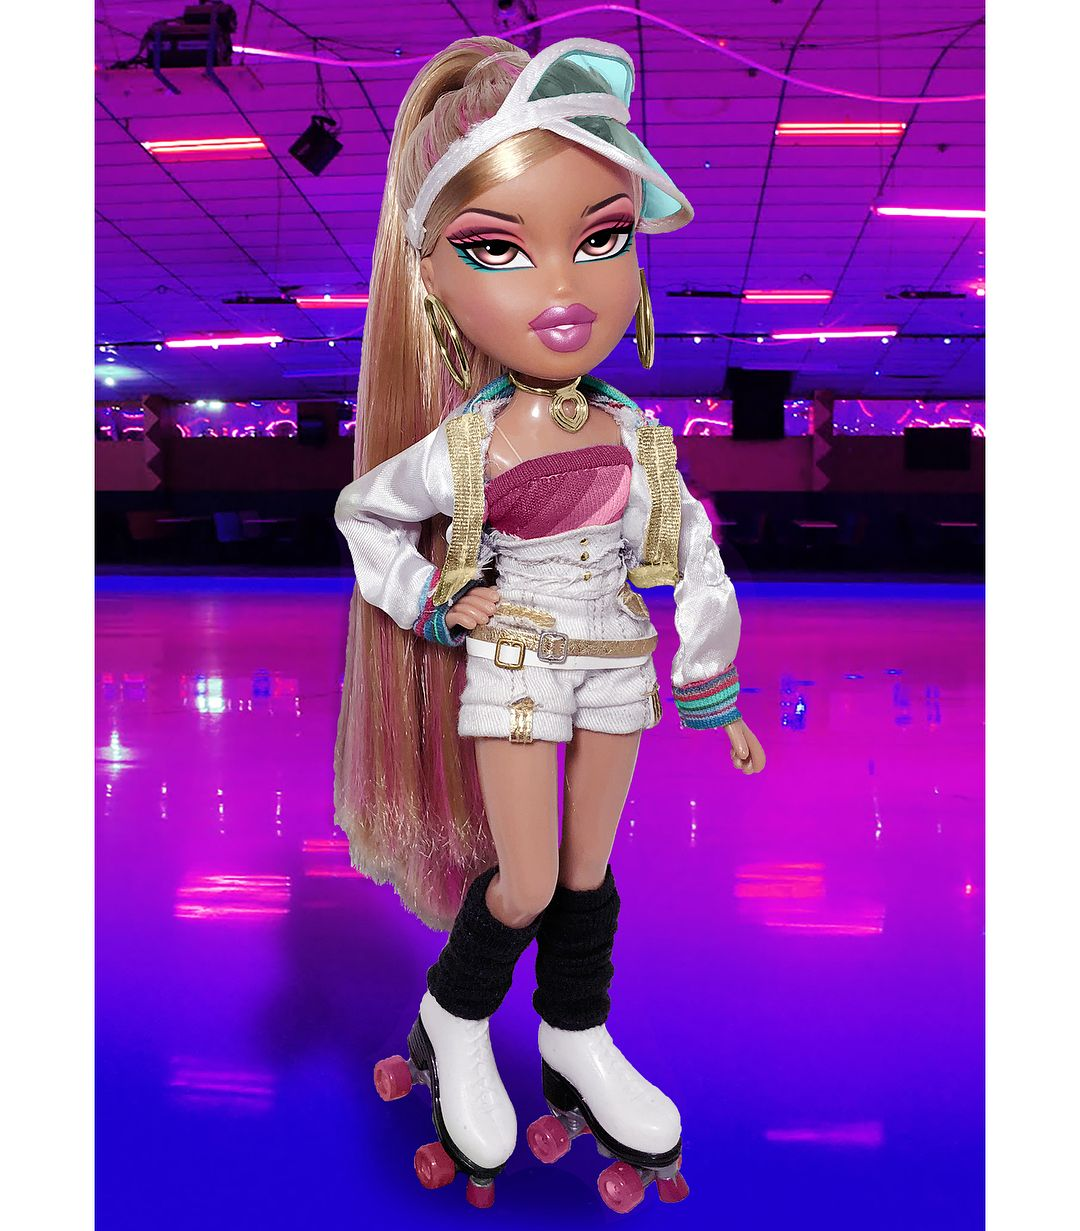 Wake Me Up Before You Go Go This Theme For Picture This Dntm This Week Was The 80 S And I Decided To Go With Your V Bratz Doll Outfits Bratz Girls Girl